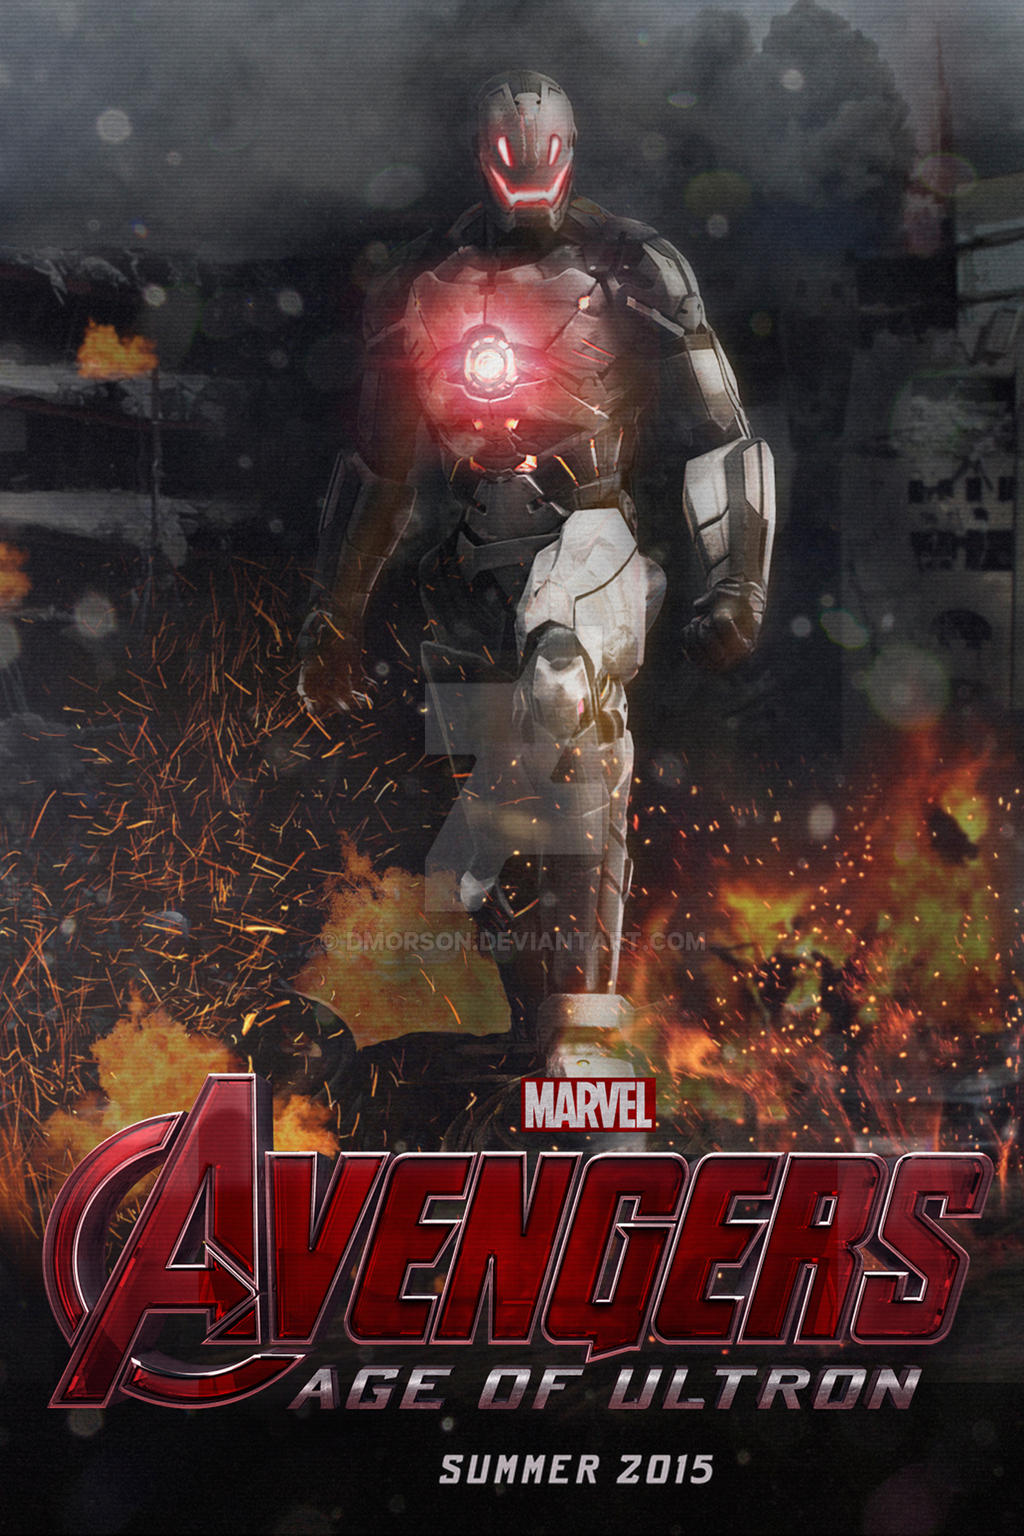 Avengers: Age of Ultron - Concept Poster 2 by dmorson on ...